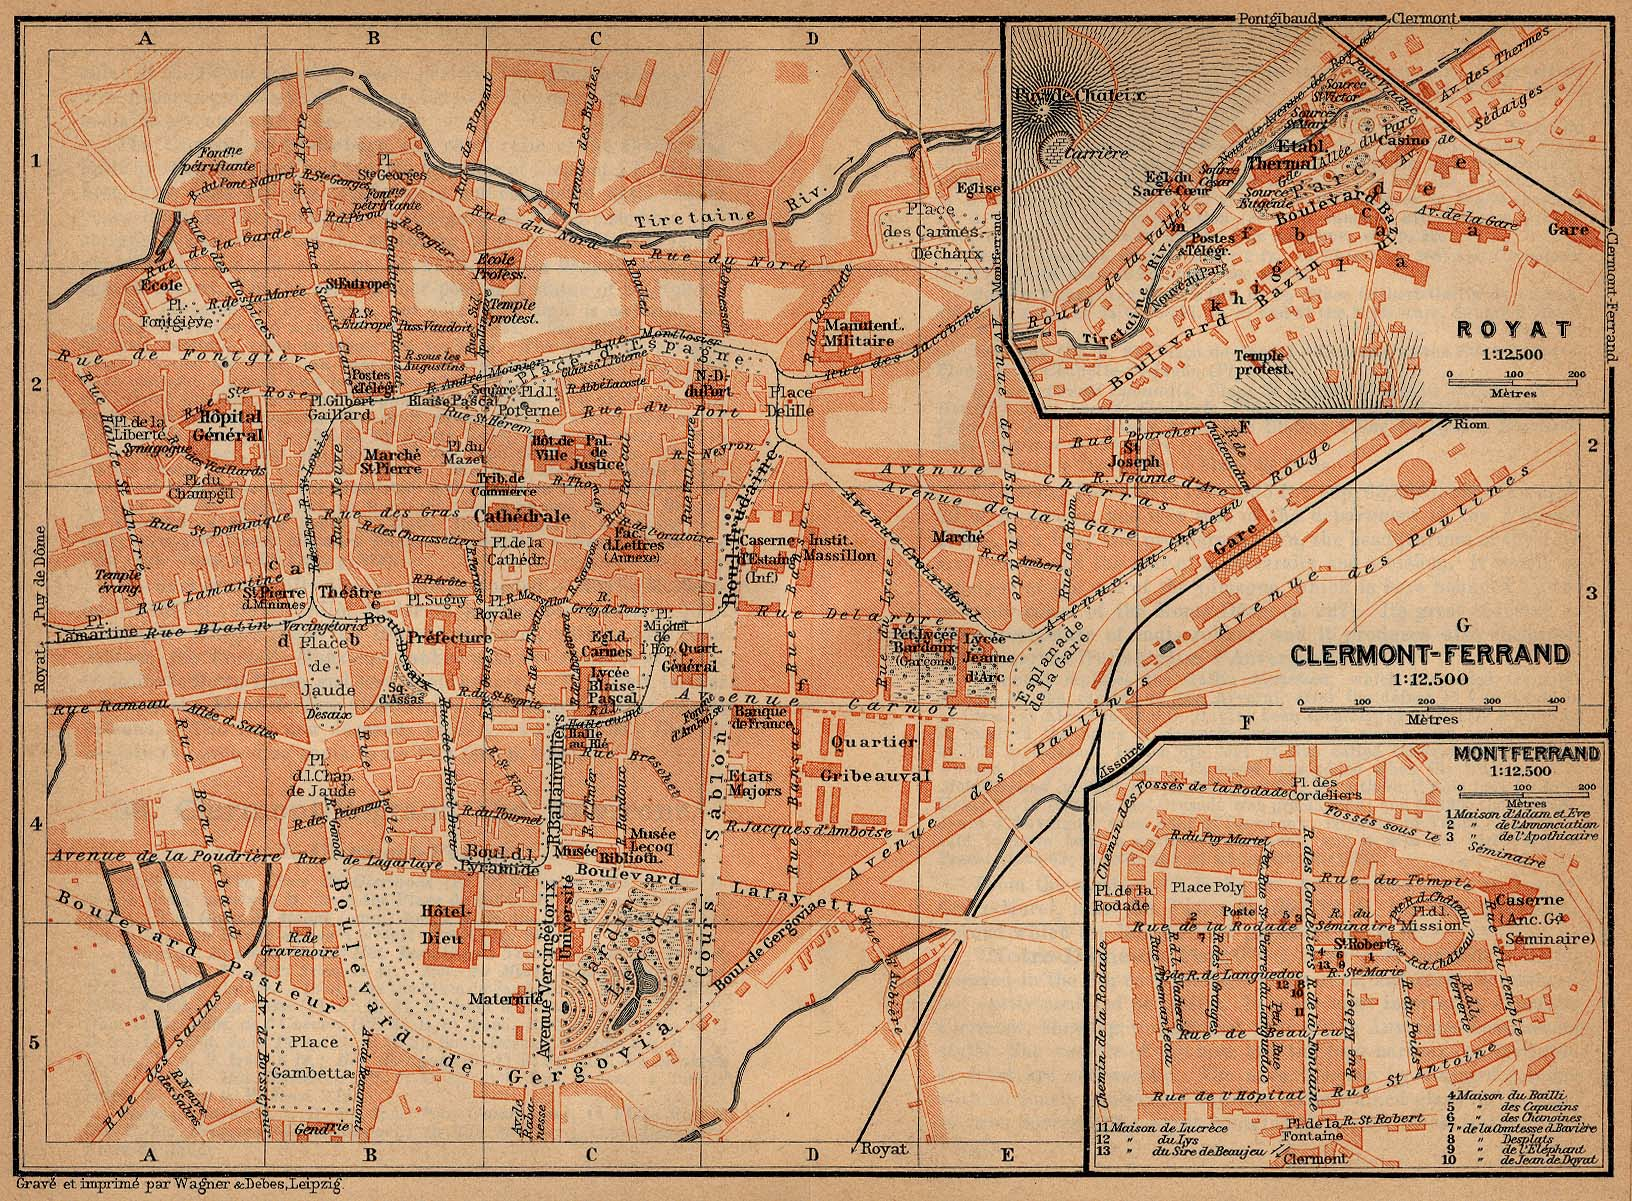 Maps of Clermont-Ferrand, Montferrand and Royat, France 1914